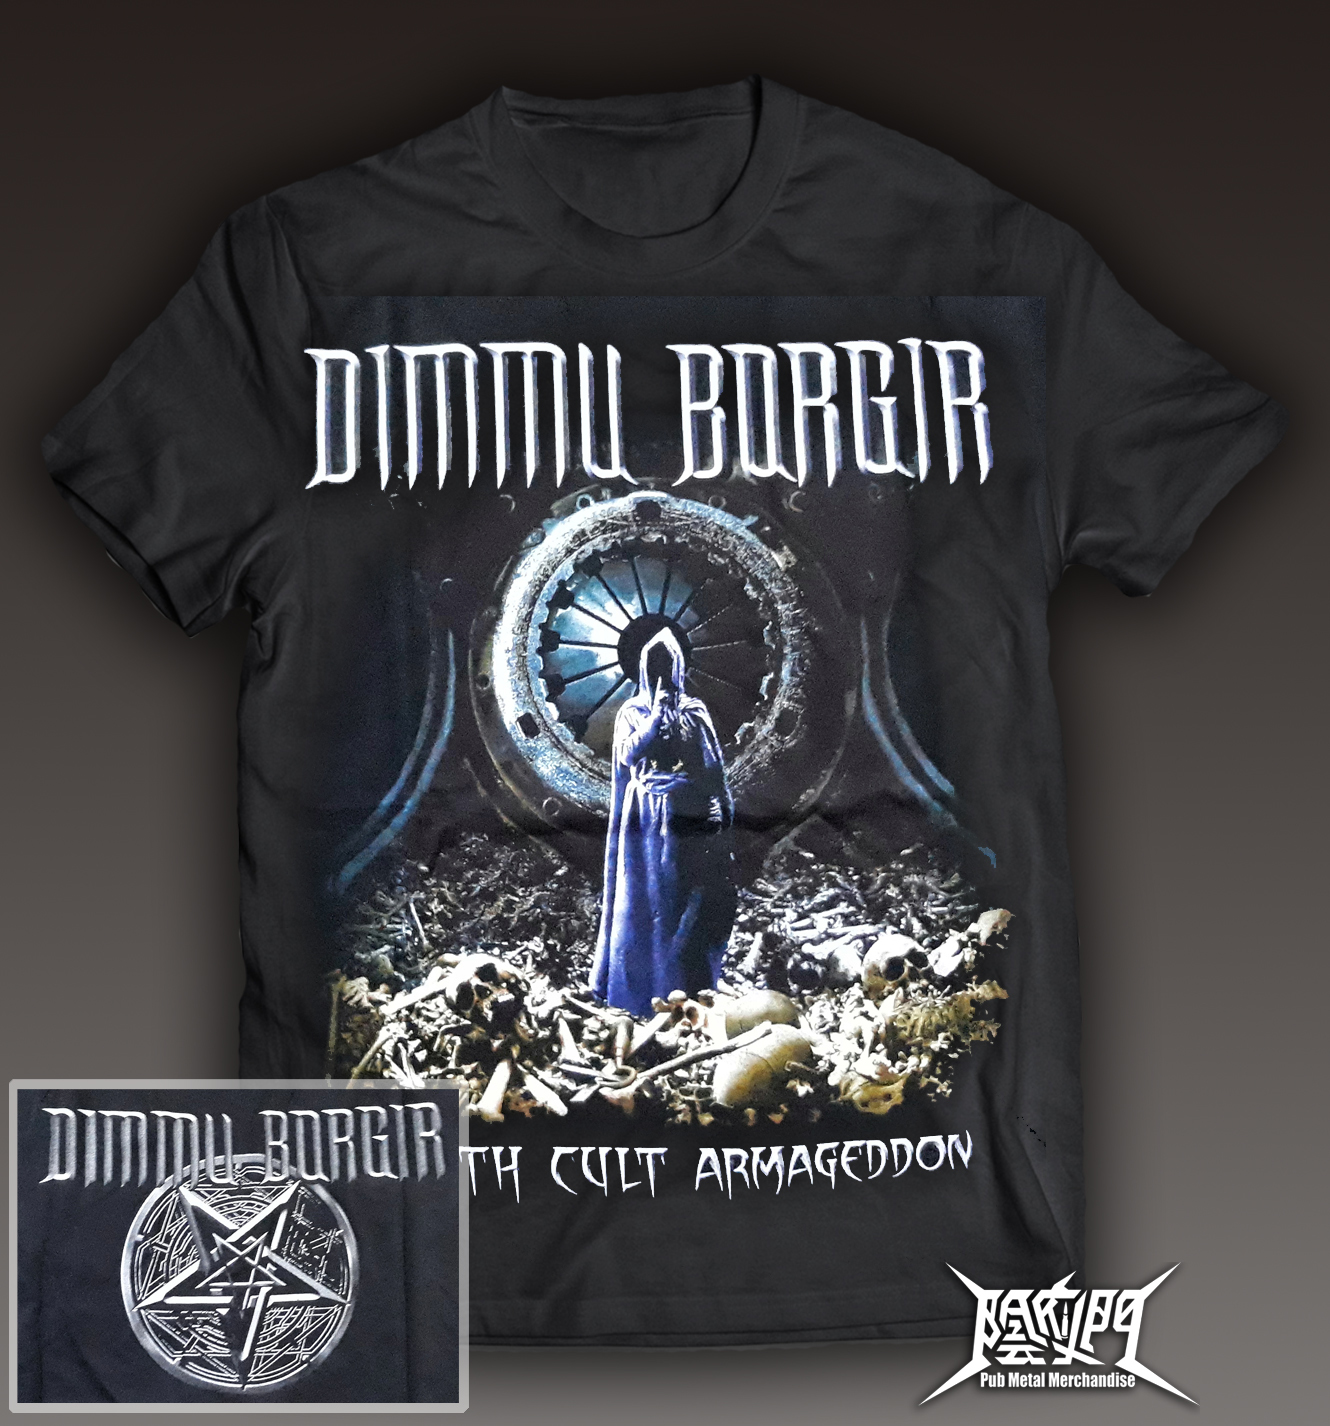 Dimmu borgir-Death cult.jpeg